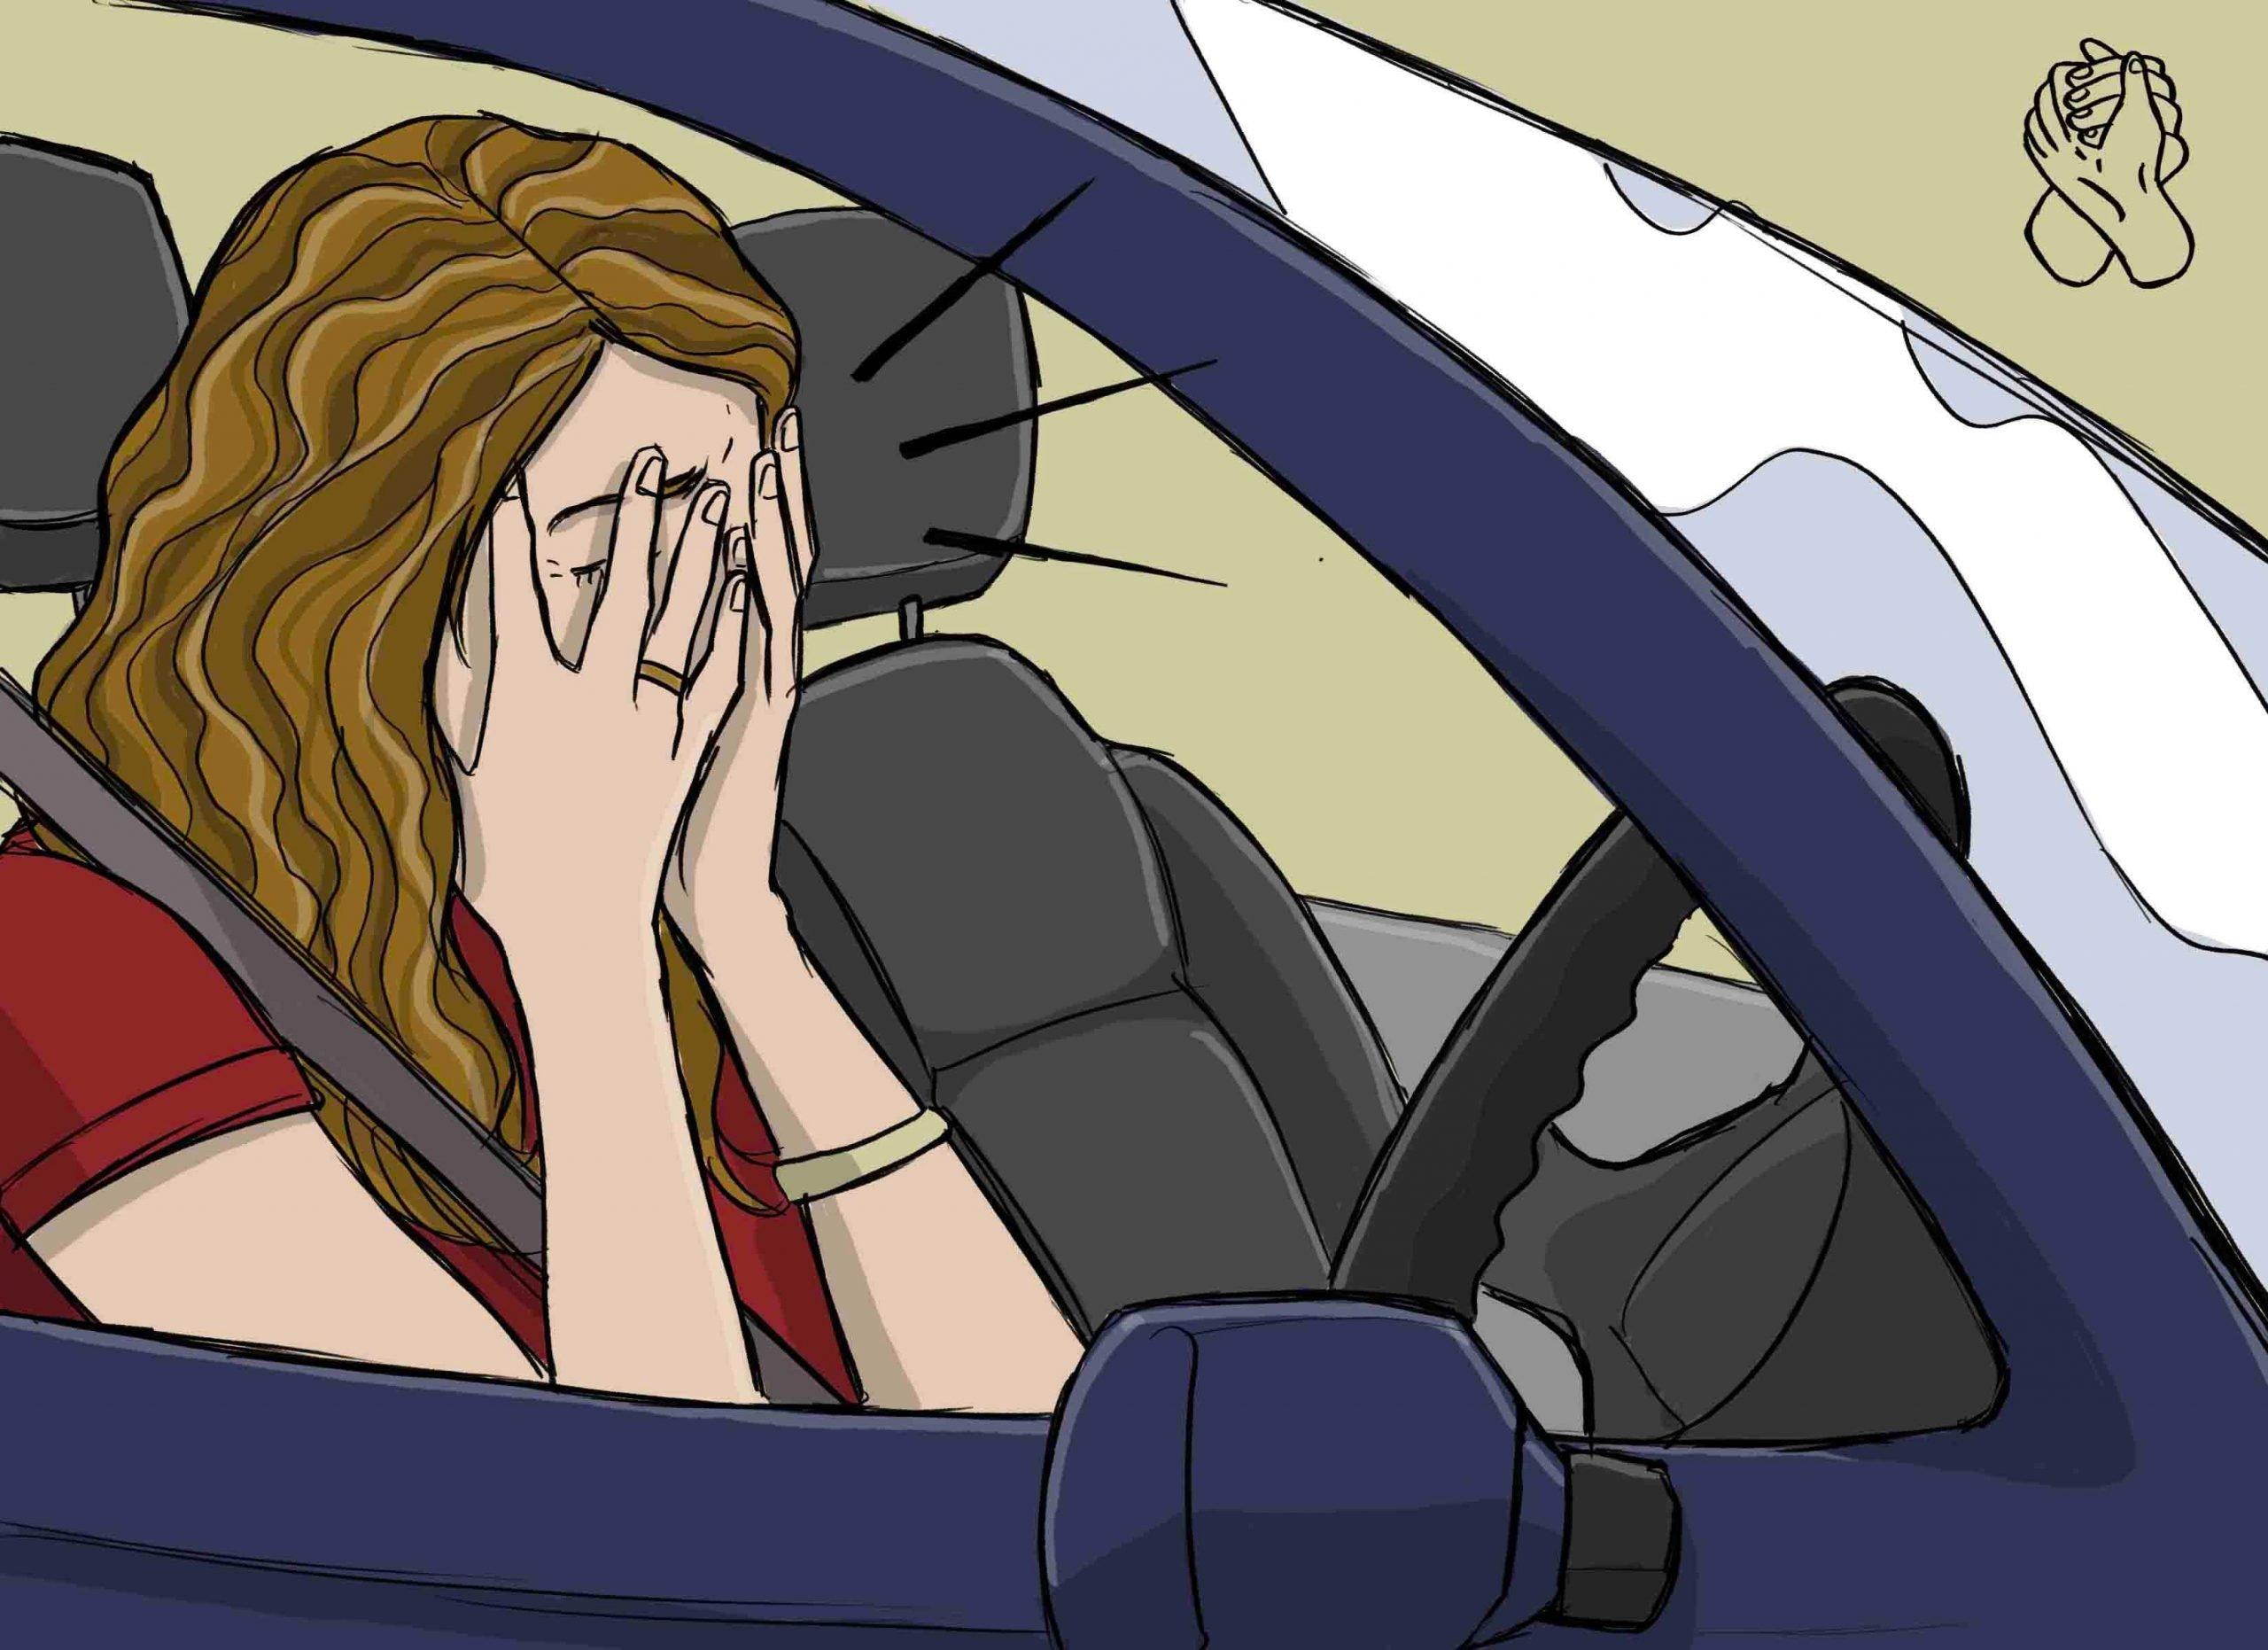 This is a drawing of a girl having driving anxiety